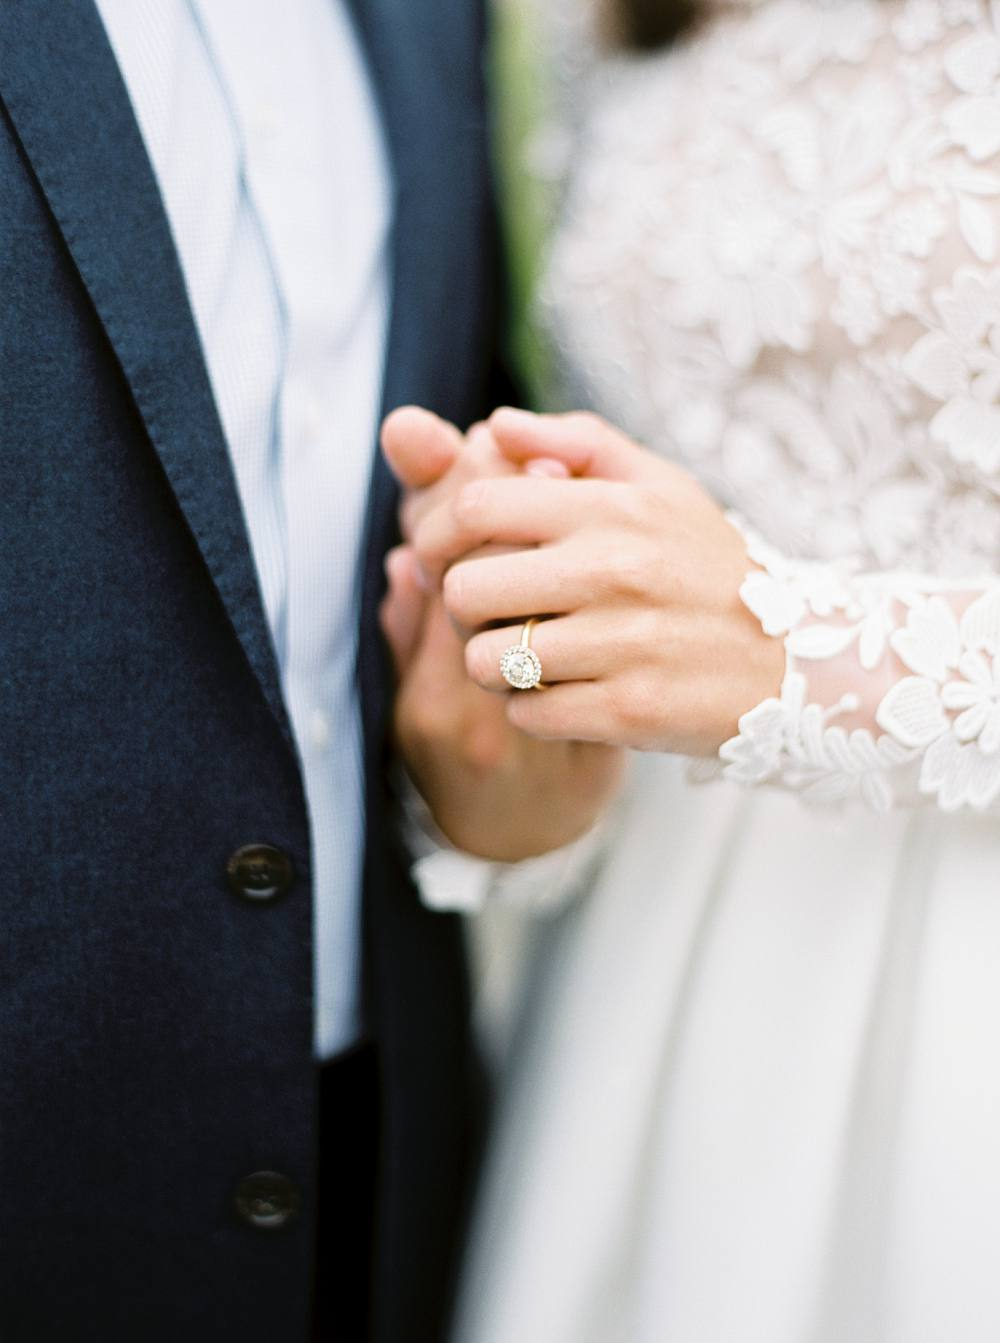 Close-up of bride and groom's hands, highlighting engagement ring and Rime Arodaky dress.